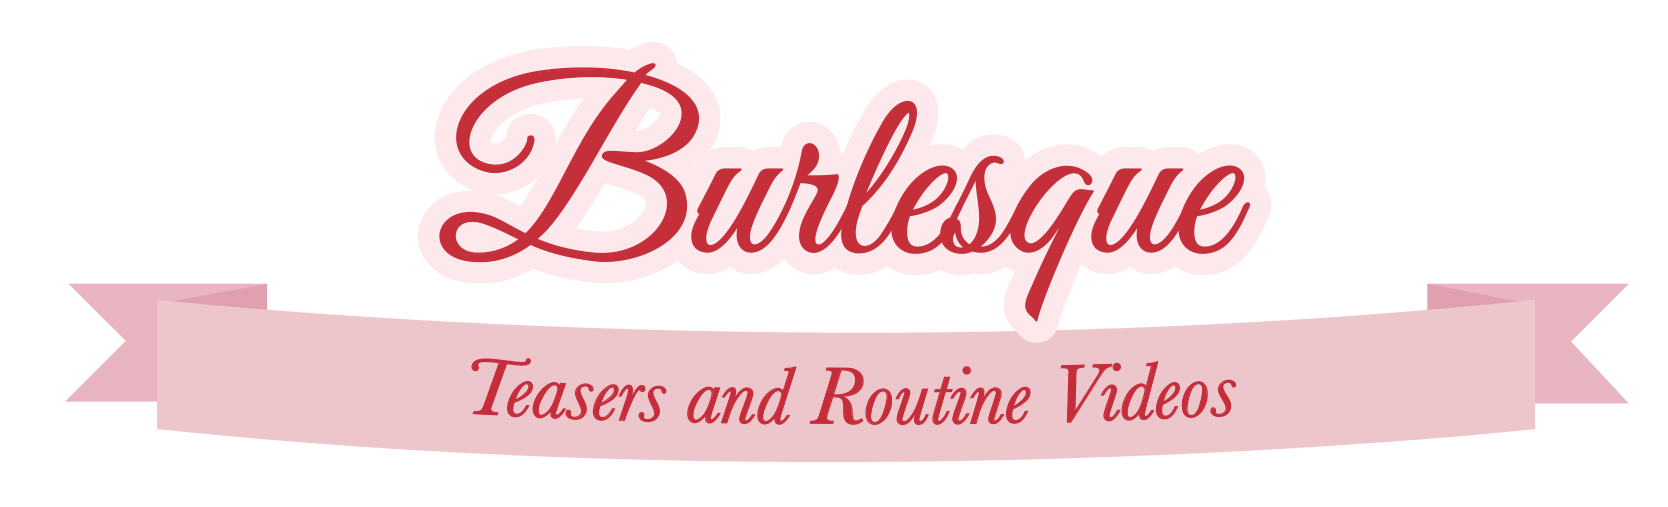 Burlesque-Videos-Title.png